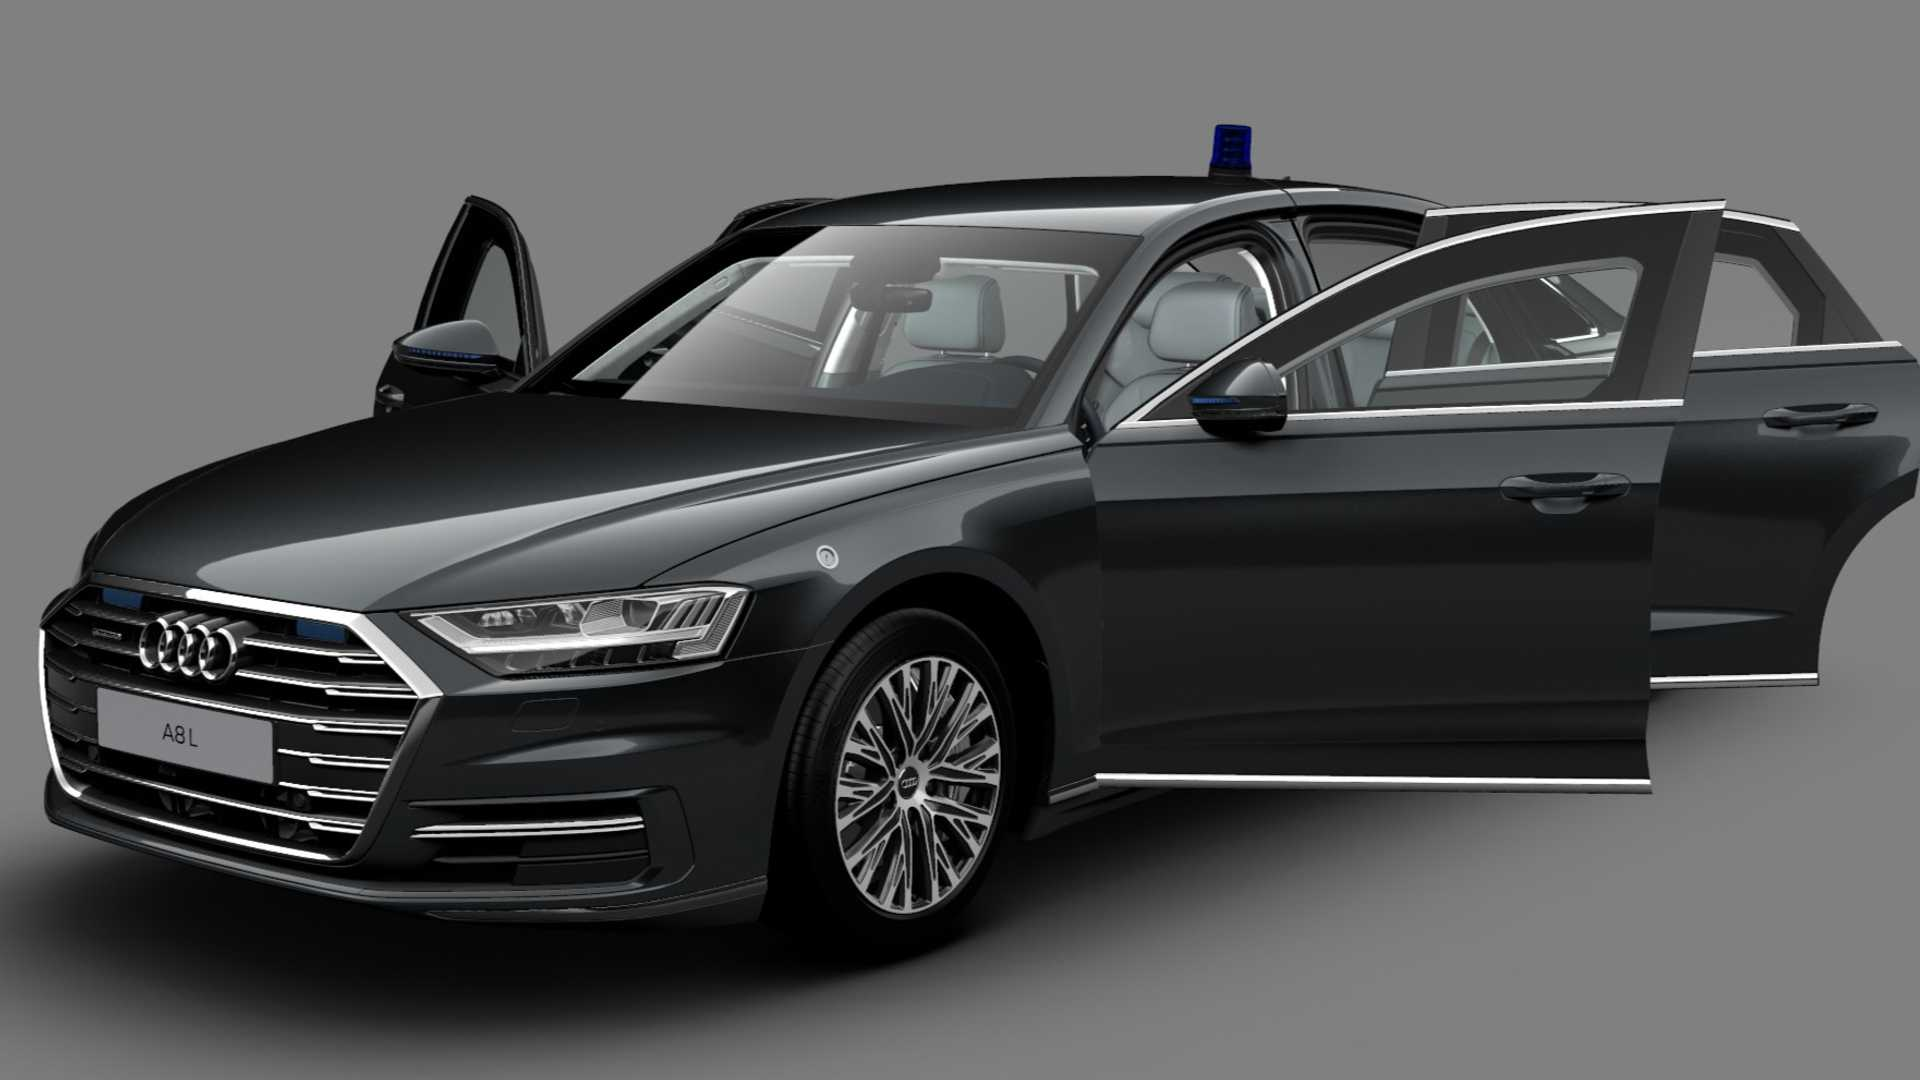 Audi A8 L Security 2021